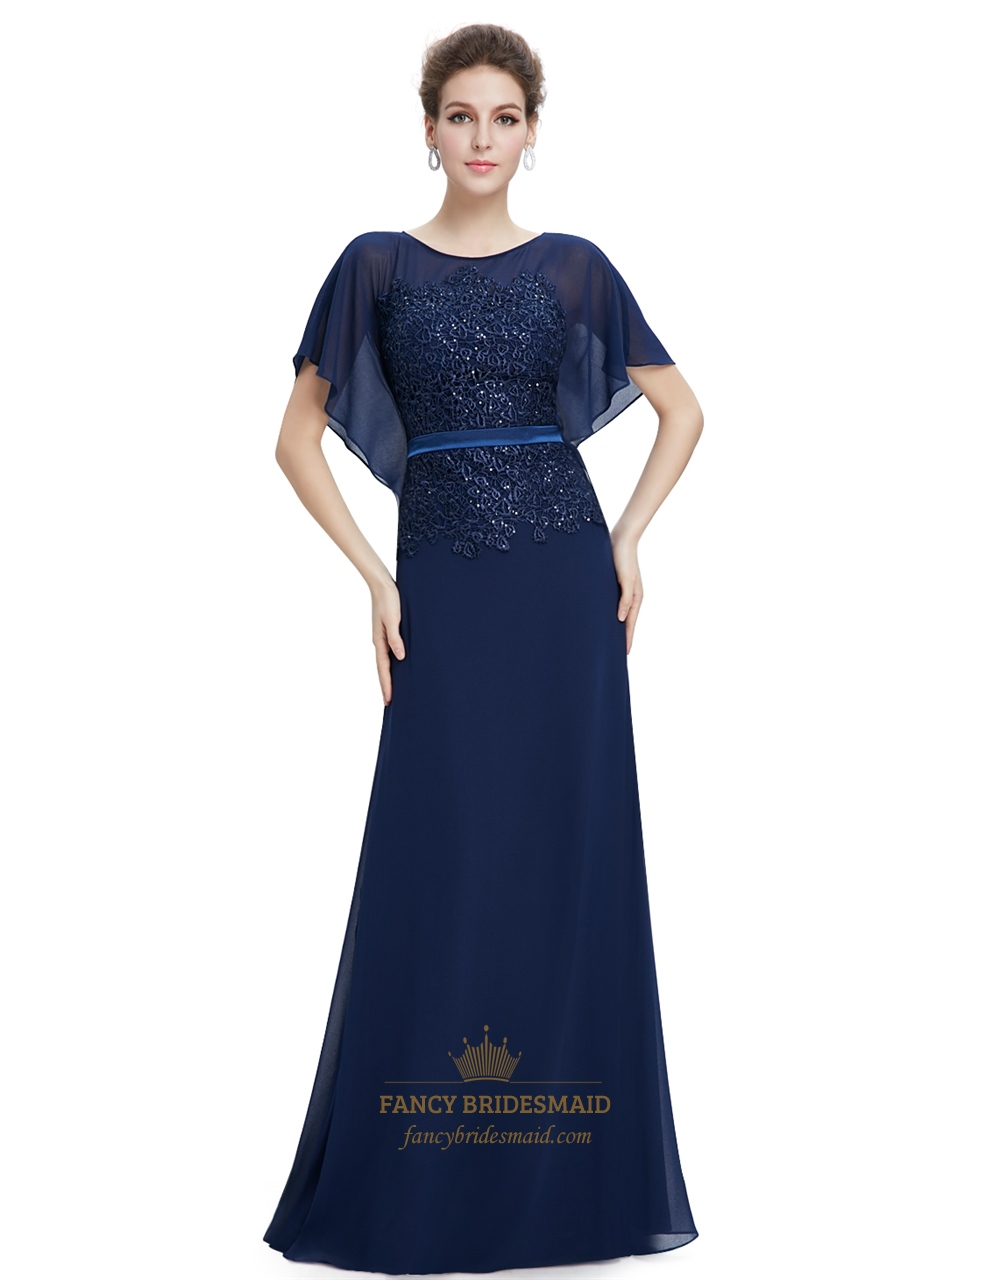 Navy Blue Bridesmaids Dresses With Sleeves : Navy blue chiffon flutter sheer sleeve prom dresses with lace applique